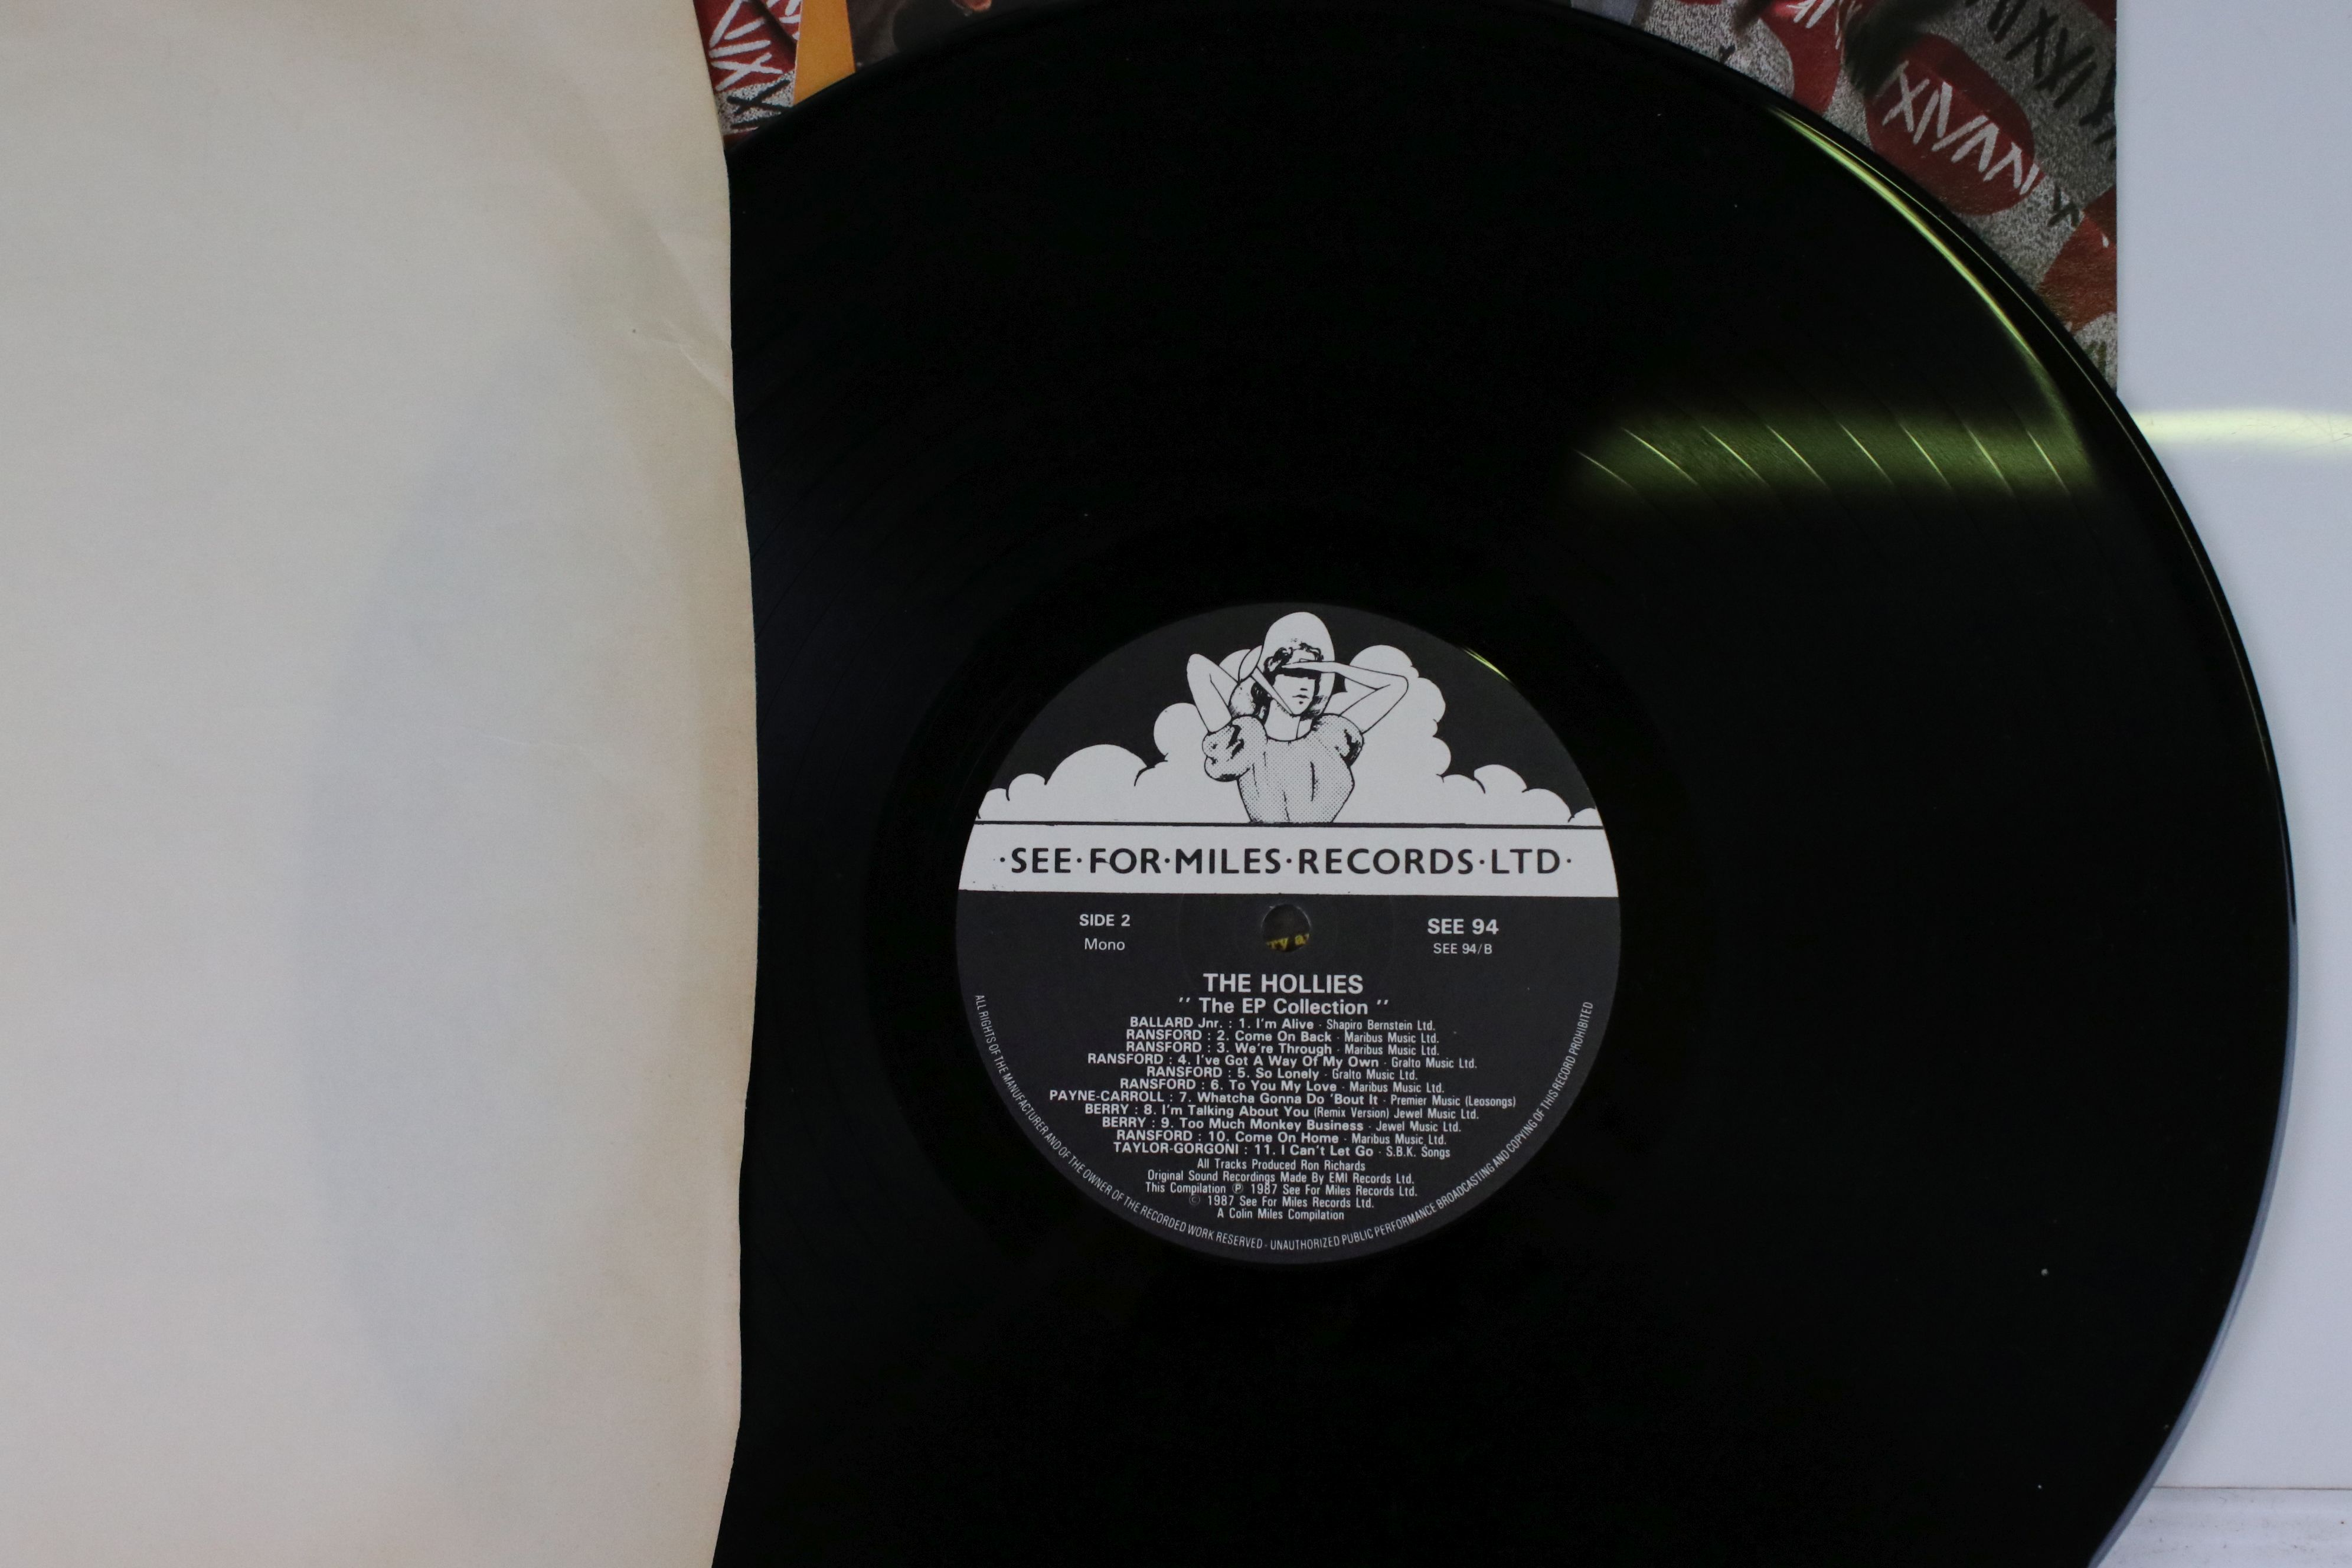 Vinyl - Three LPs on See For Miles Records to include The Hollies EP Collection SEE94, Gerry and the - Image 3 of 5